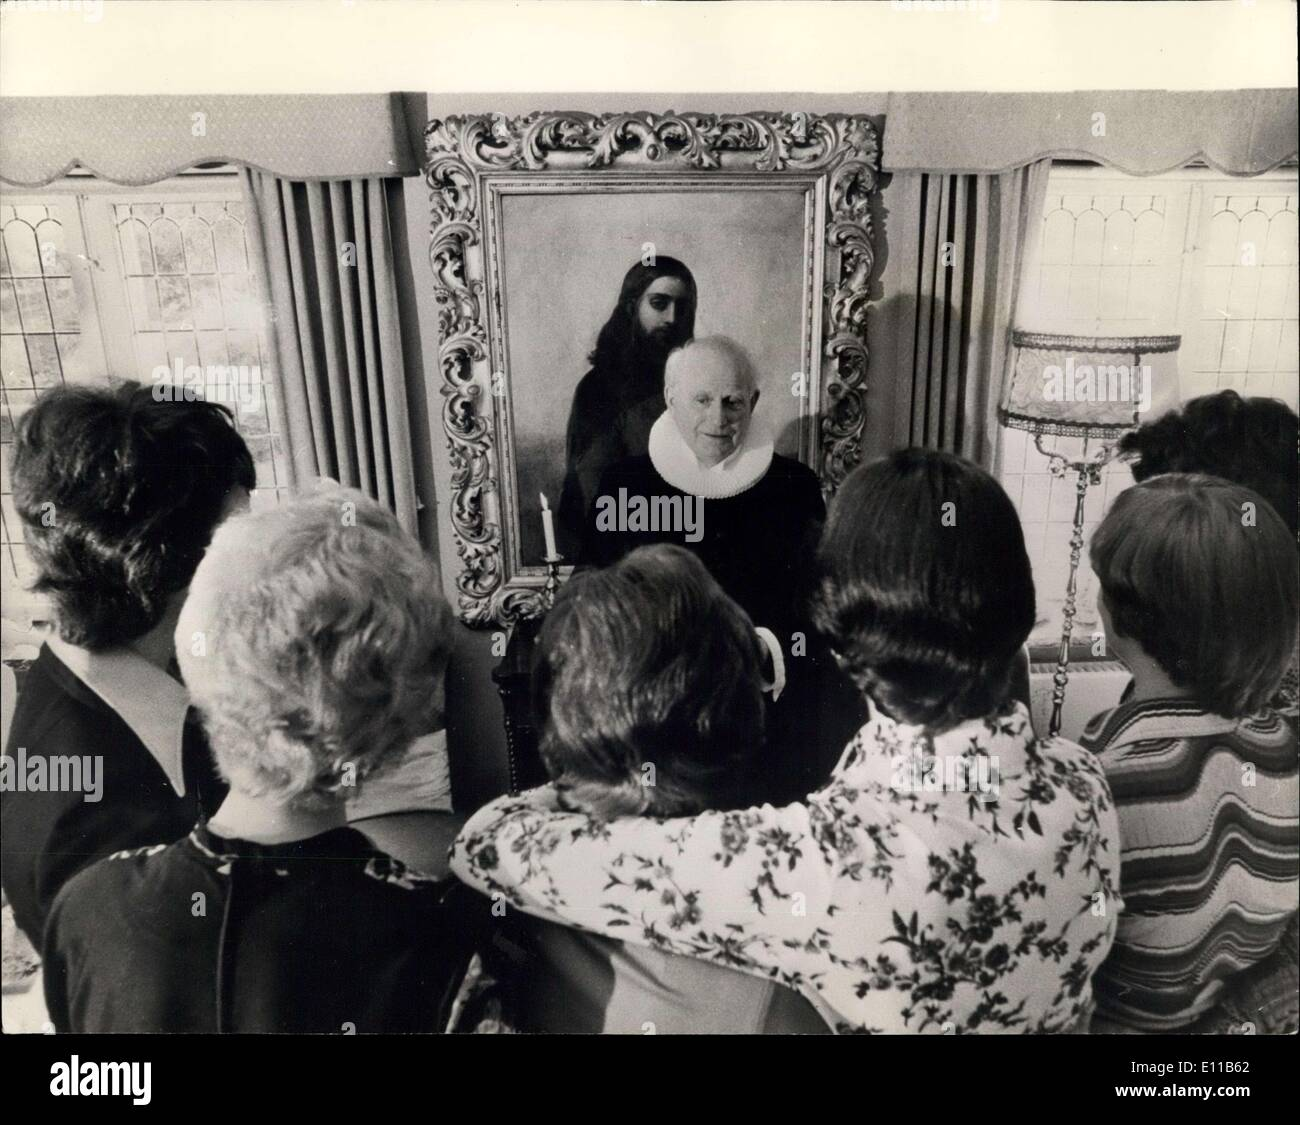 Nov. 10, 1976 - A triple Wedding With A Difference-The Three Couples Were All Females: Three weddings at the same - Stock Image